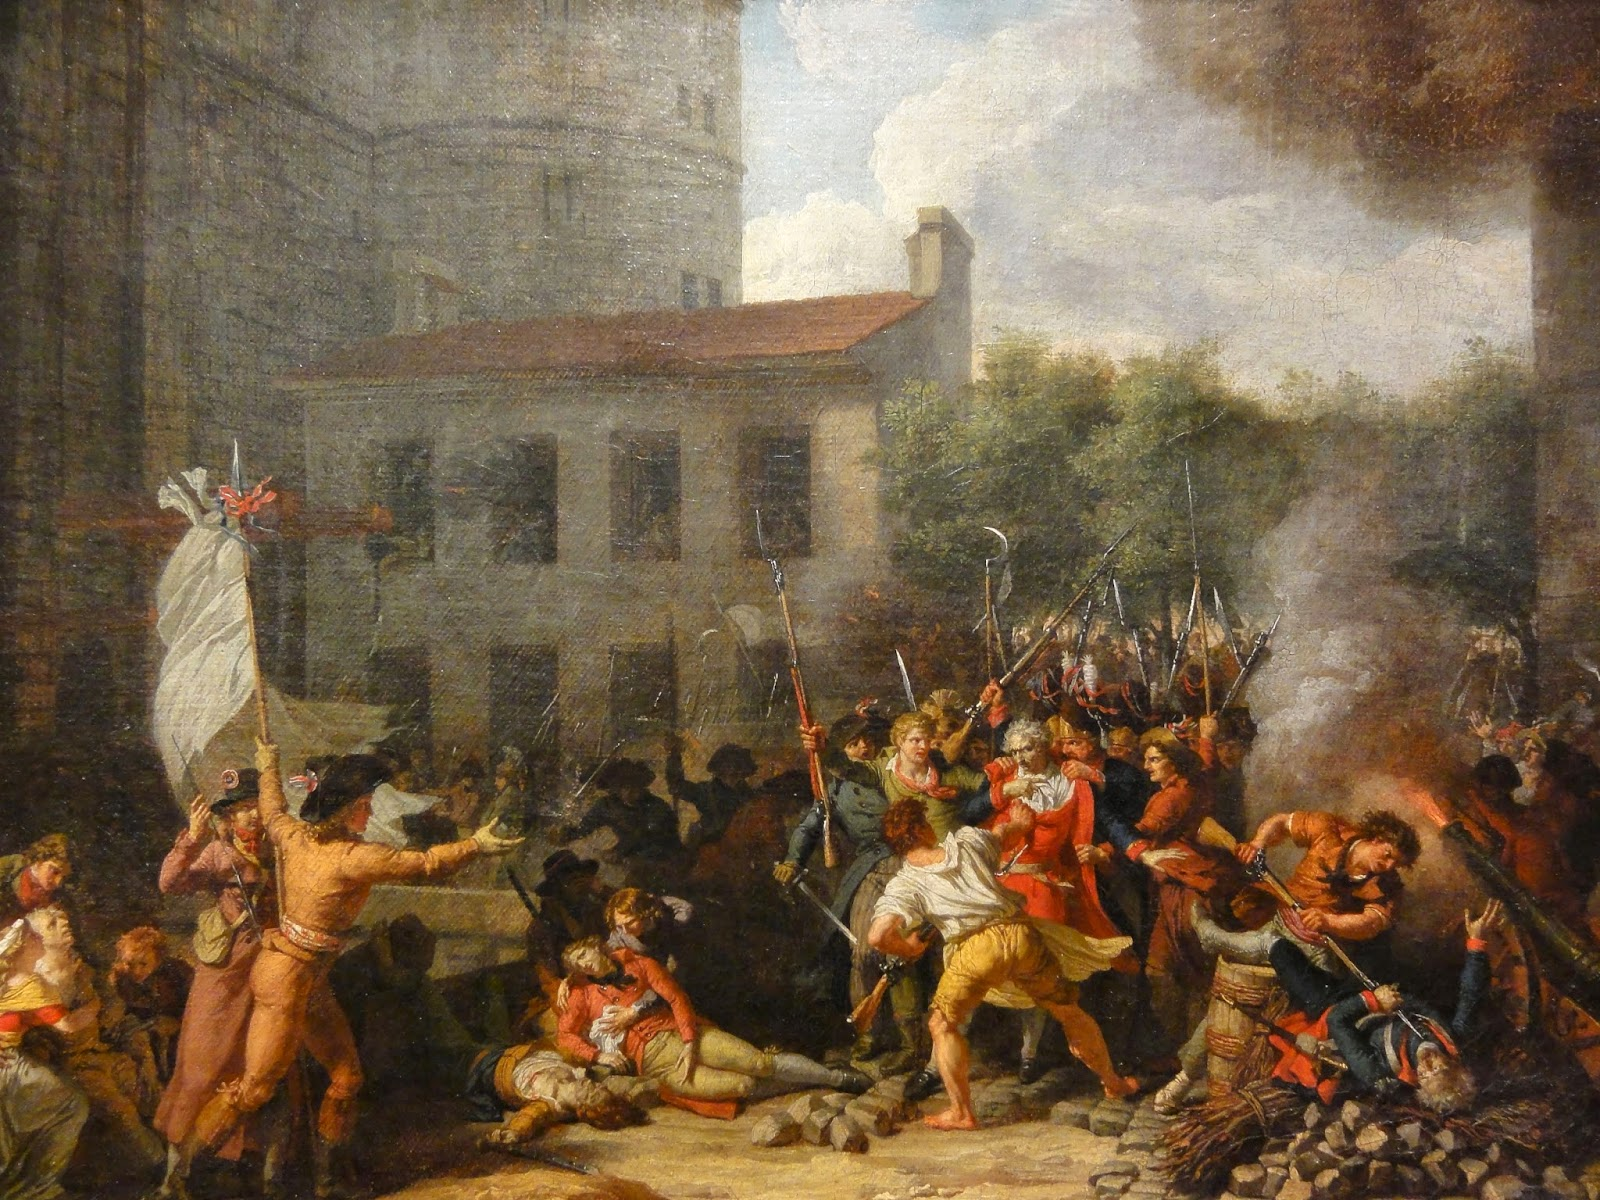 The Guillotine French Revolution Posters Picture of Louis XVIs Execution Description of Louis XVIs beheading